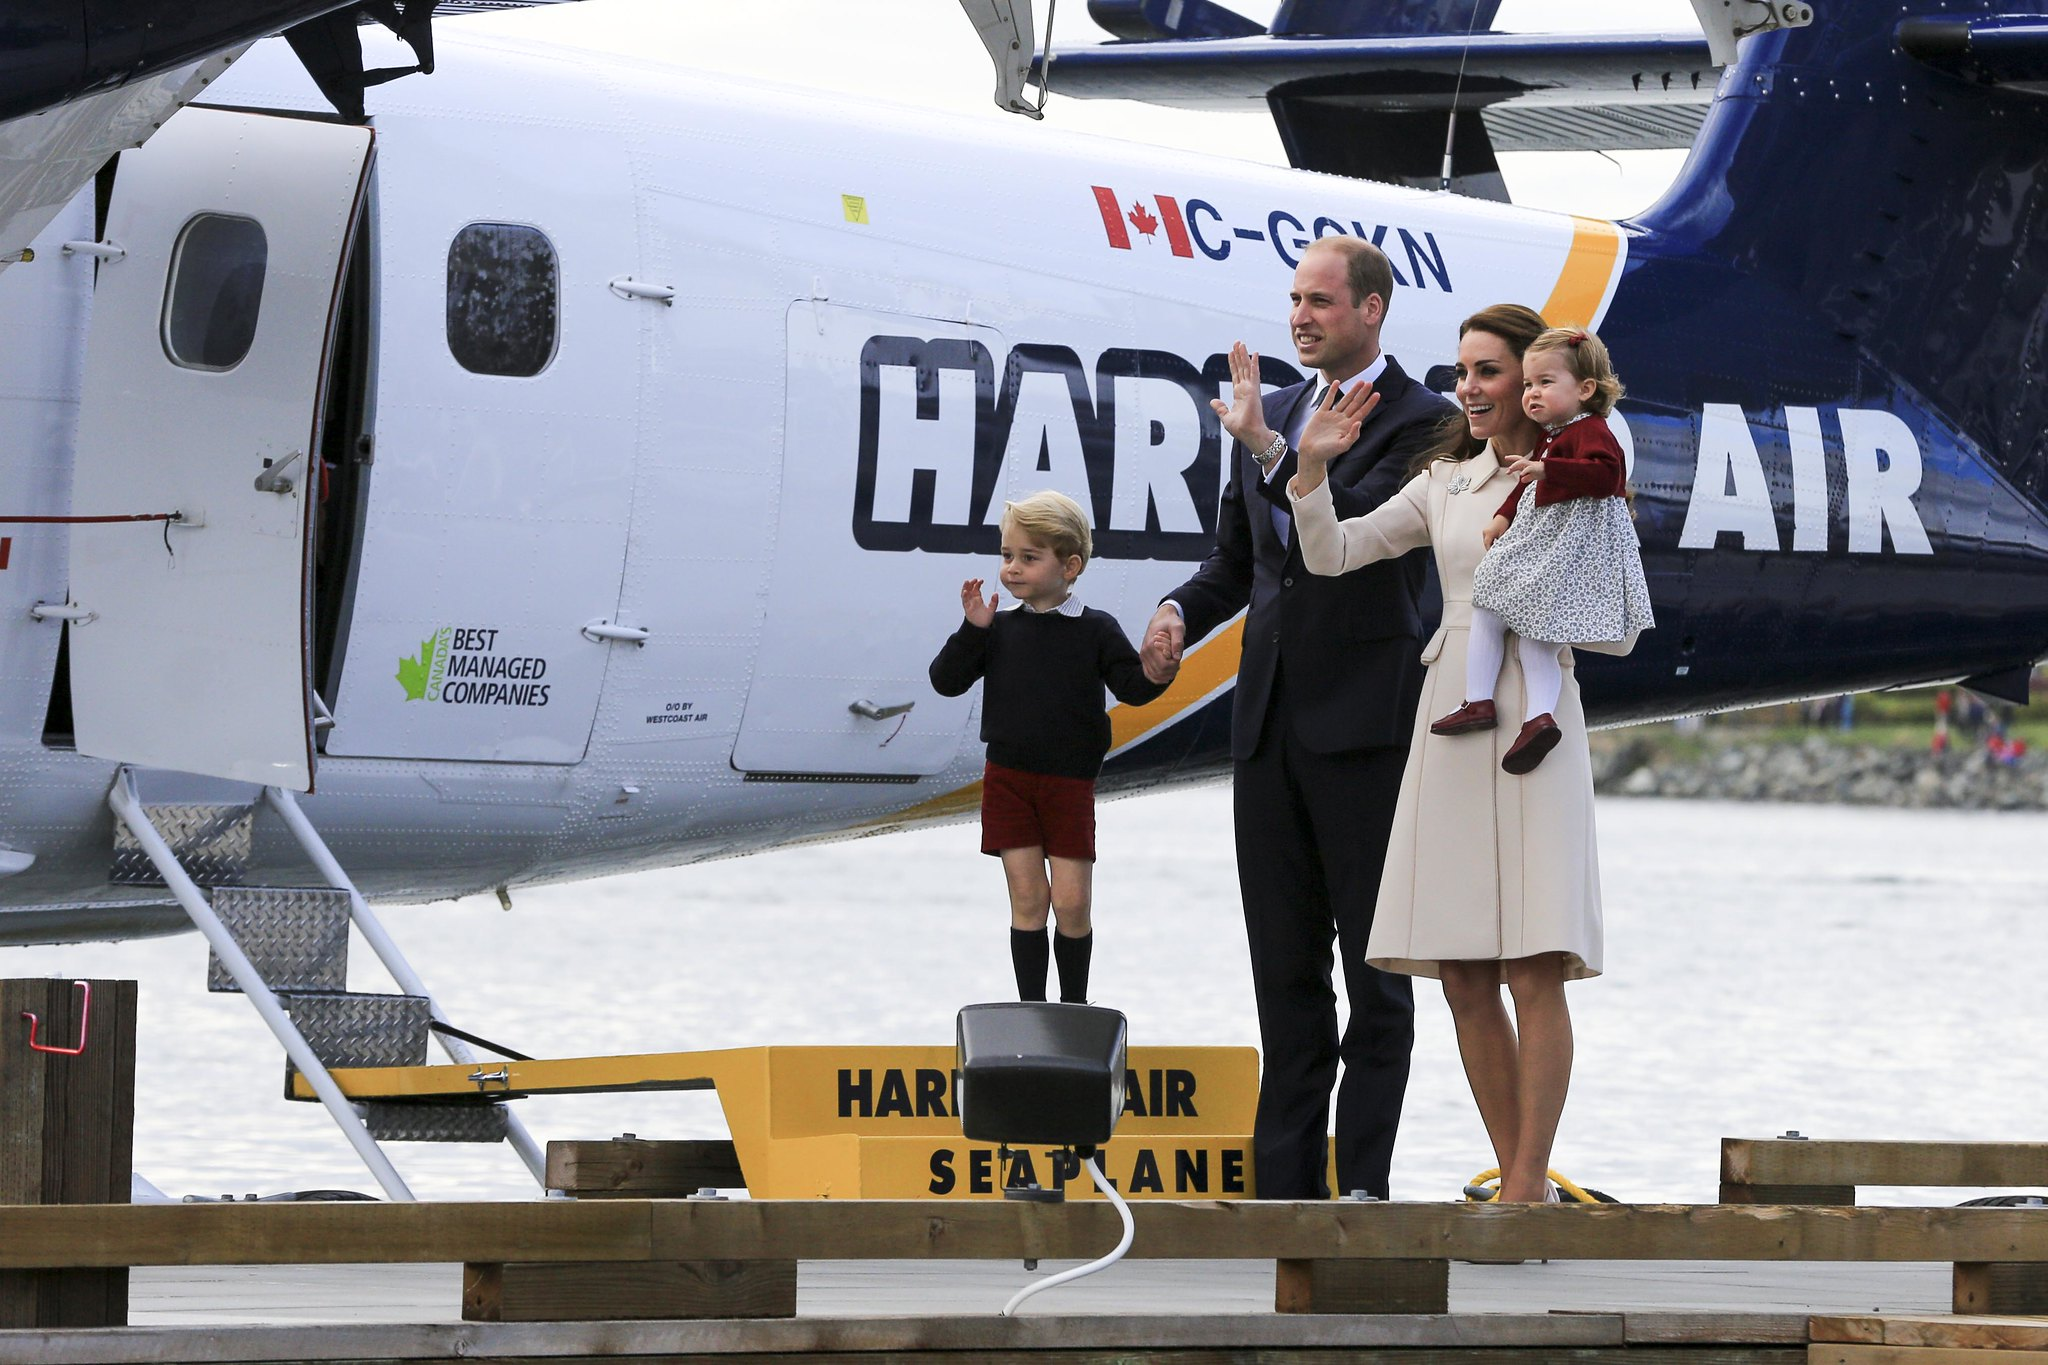 The Duke and Duchess of Cambridge on the last day of Canada tour